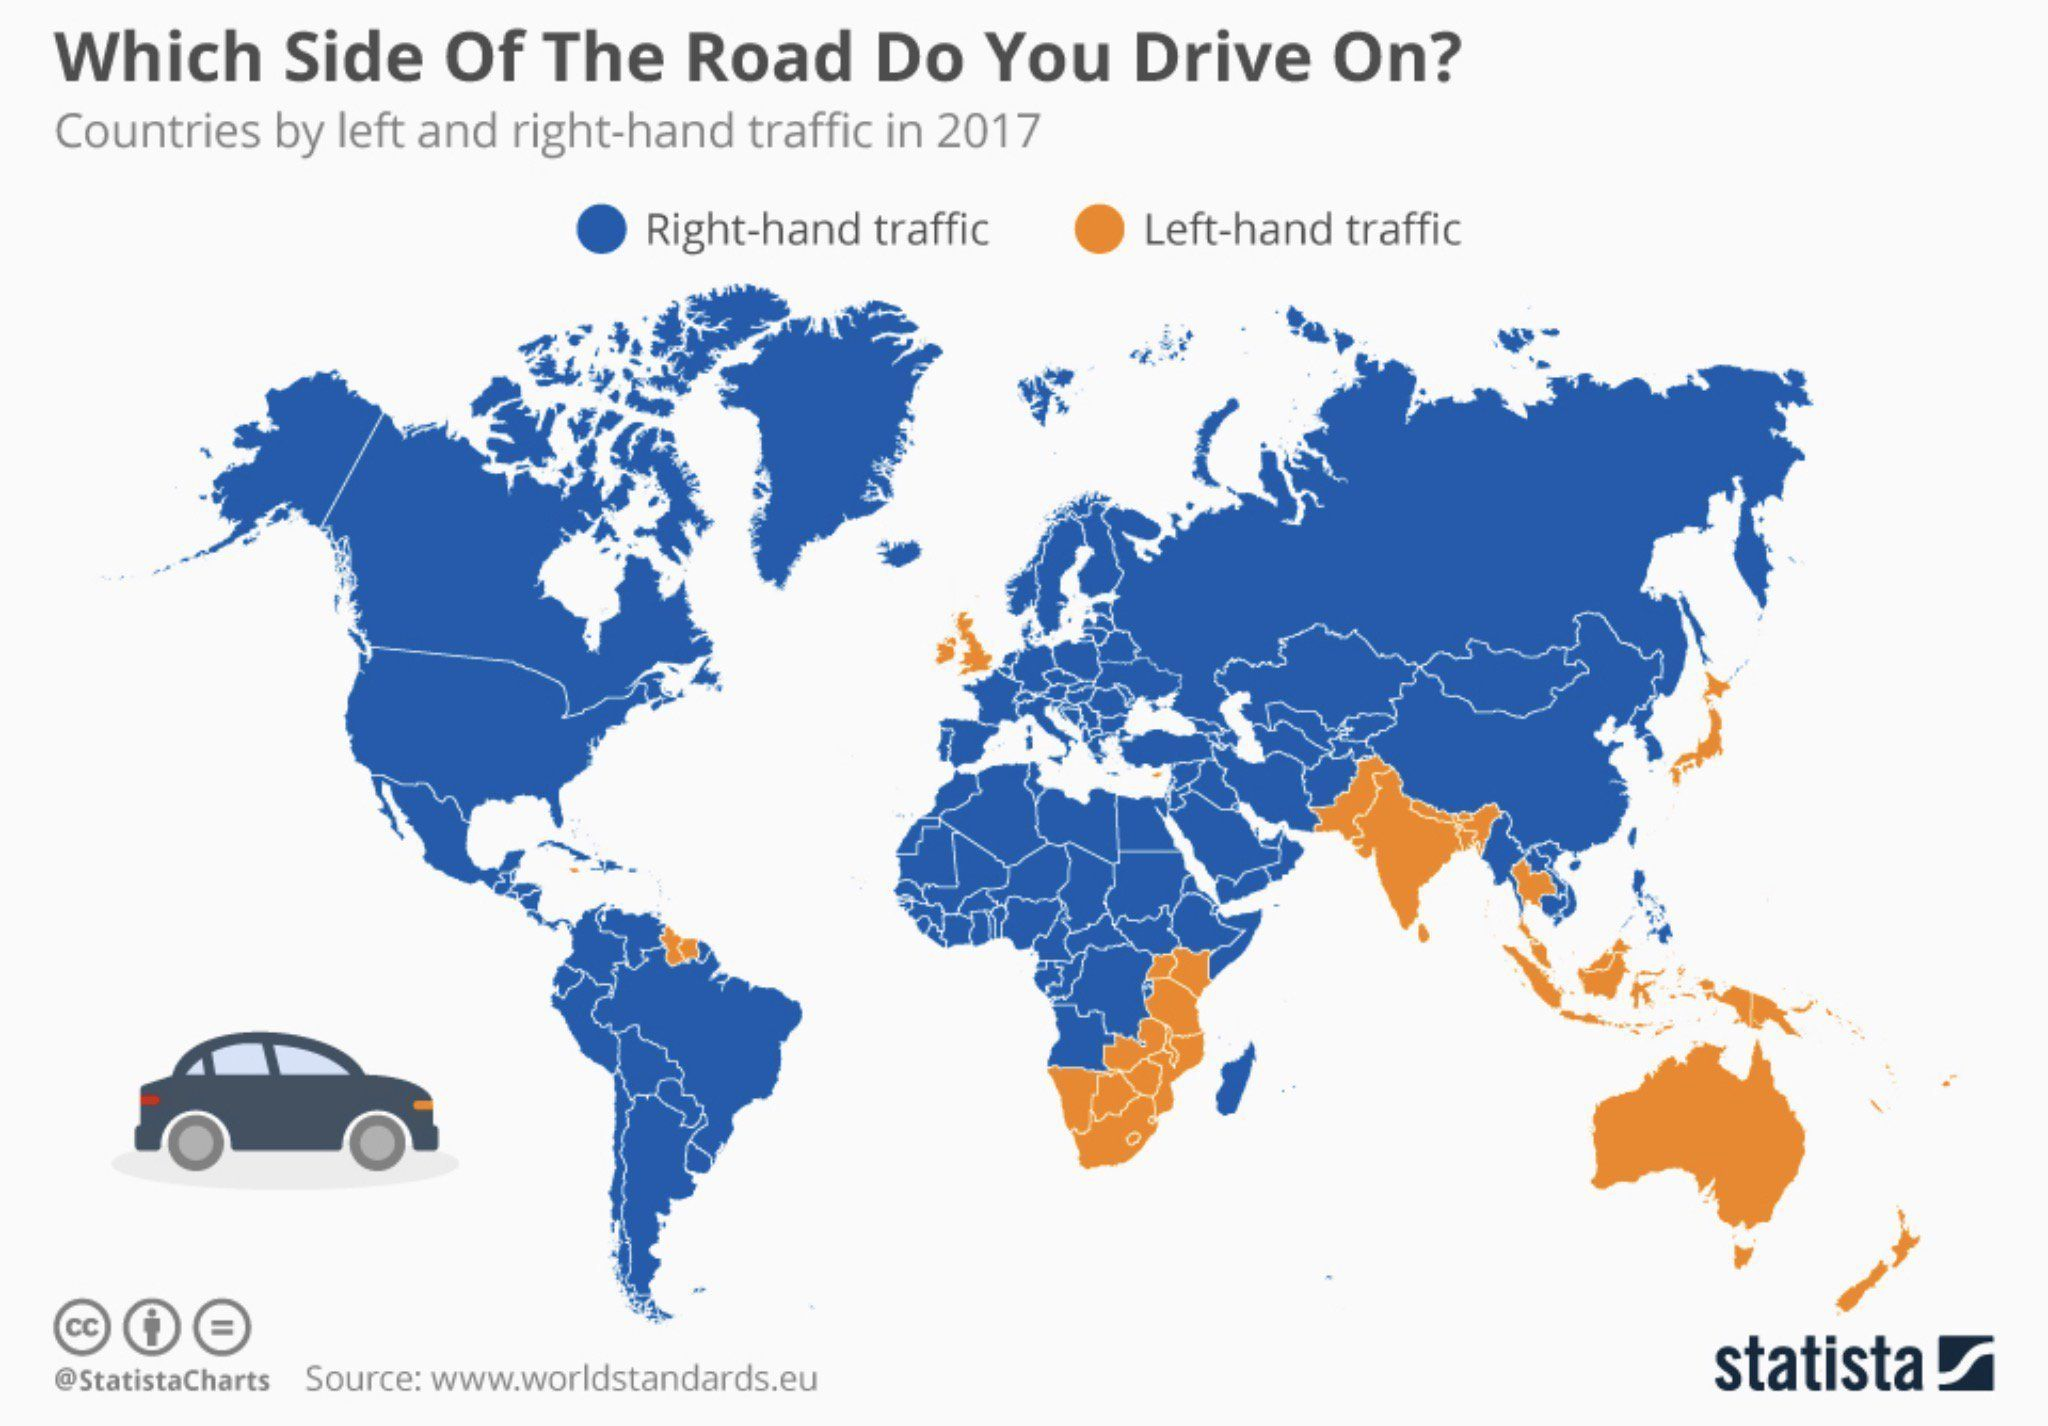 viaggio, statista, car, left-handed drive on, right-handed drive on,